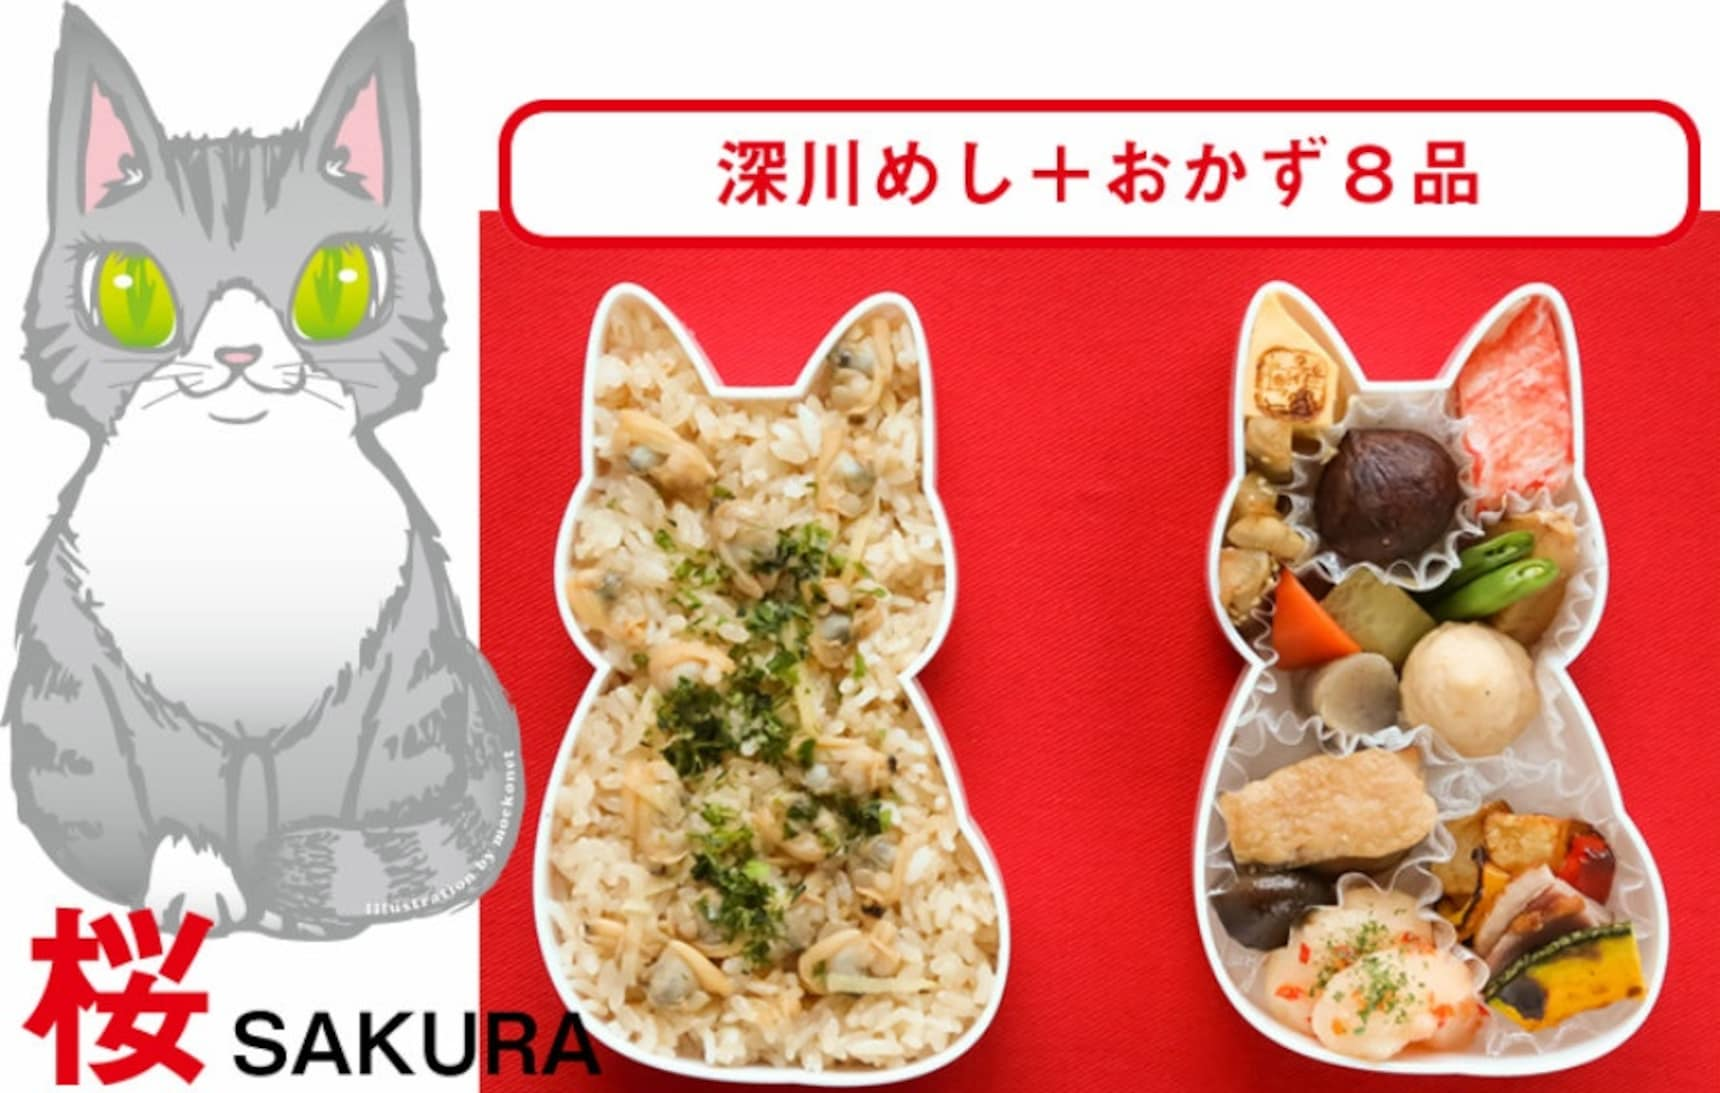 The Purrfect Bento Box for Cat Lovers